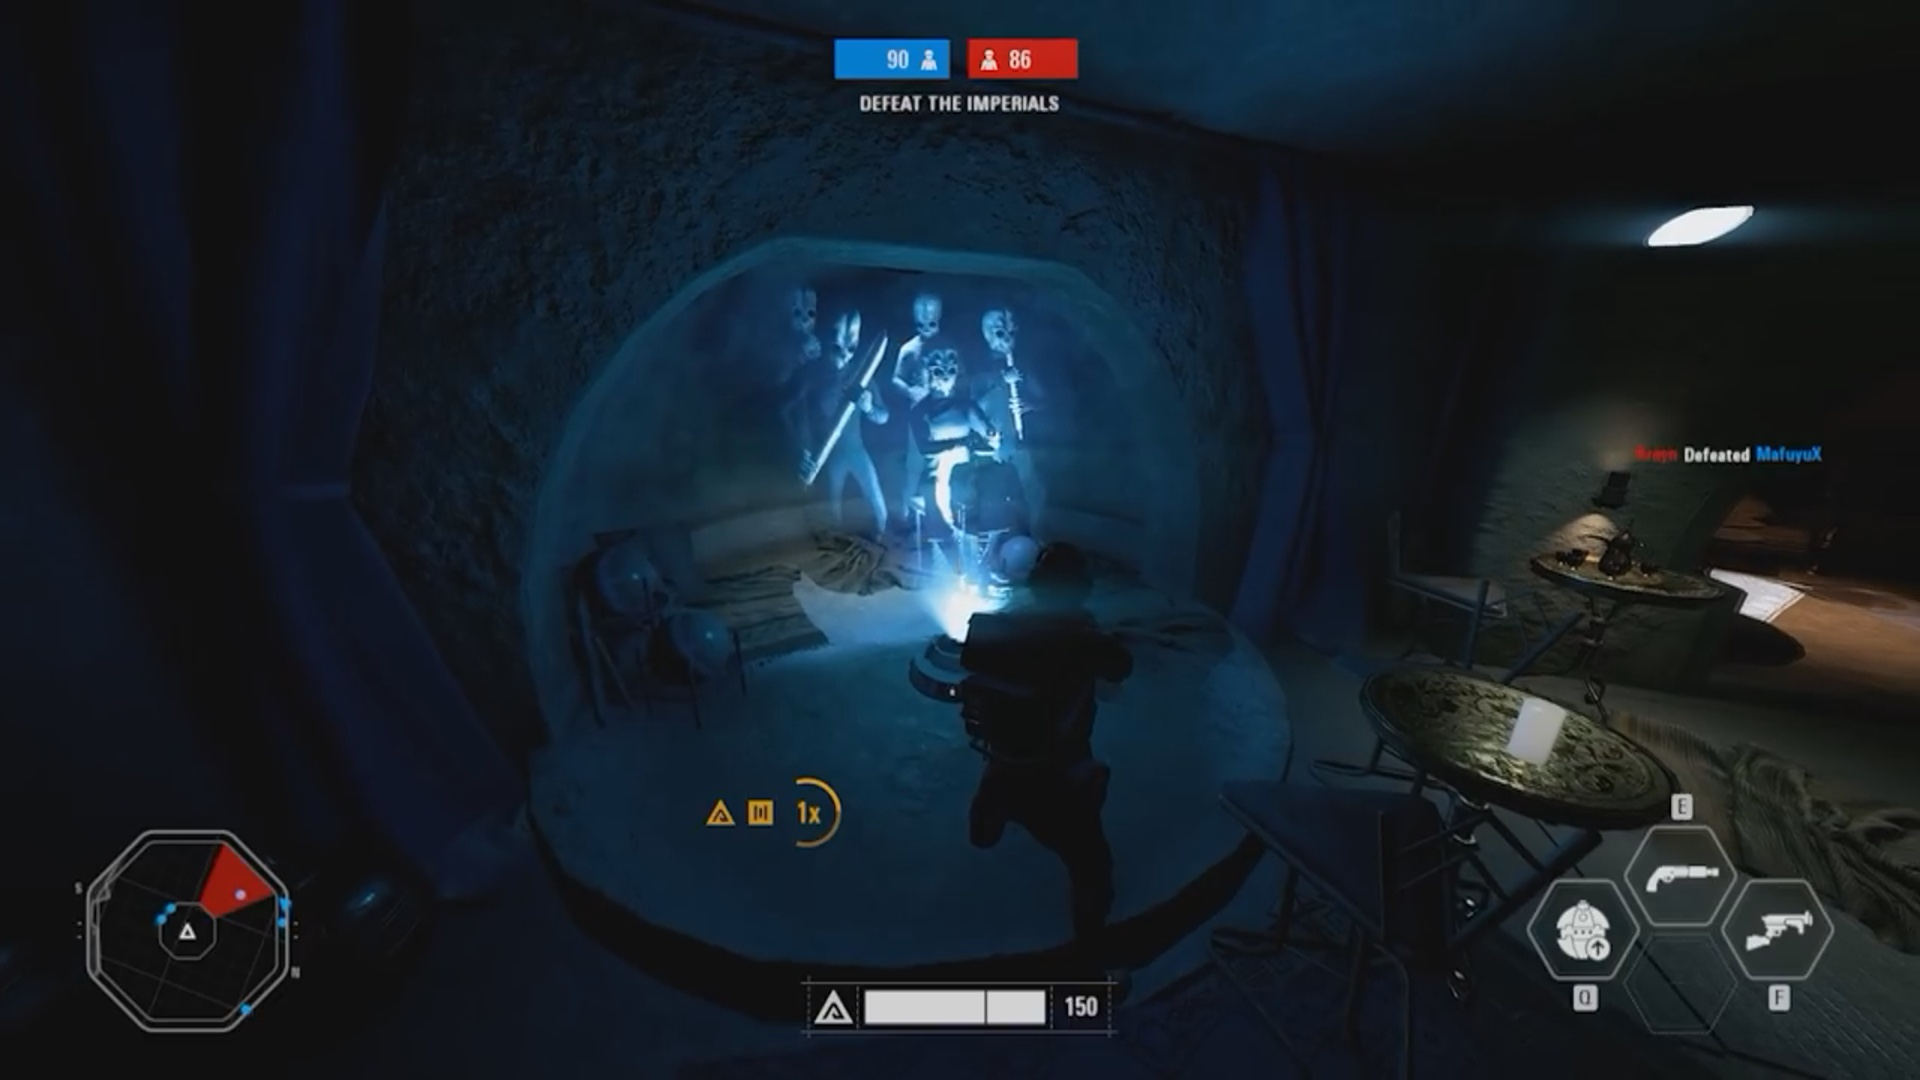 Star Wars: Battlefront II – Where To Find All Secret Easter Eggs on star wars: empire at war, star wars imperial ships, star wars empire army, star wars battlefront: elite squadron, star wars imperial army, star wars: starfighter, star wars: knights of the old republic, star wars: the clone wars, star wars battle maps, star wars ships inside, stronghold 1 maps, star wars ship blueprints, star wars ships and vehicles, star wars episode iii: revenge of the sith, star wars game maps, star wars: galactic battlegrounds, battlefront 2 custom maps, star wars: bounty hunter, star wars: the force unleashed, gears of war 1 maps, star wars: battlefront iii, mercenaries 1 maps, star wars battlefield xbox 360, star wars imperial commando, star wars: dark forces, star wars kotor 2 maps, star wars memes, star wars: rogue squadron, star wars ship designs, star wars episode i: the phantom menace, star wars: the old republic, star wars all planets, star wars battlefront: renegade squadron, star wars jedi knight: jedi academy, star wars: battlefront ii, guild wars maps, star wars: republic commando, star wars city, star wars galaxies,